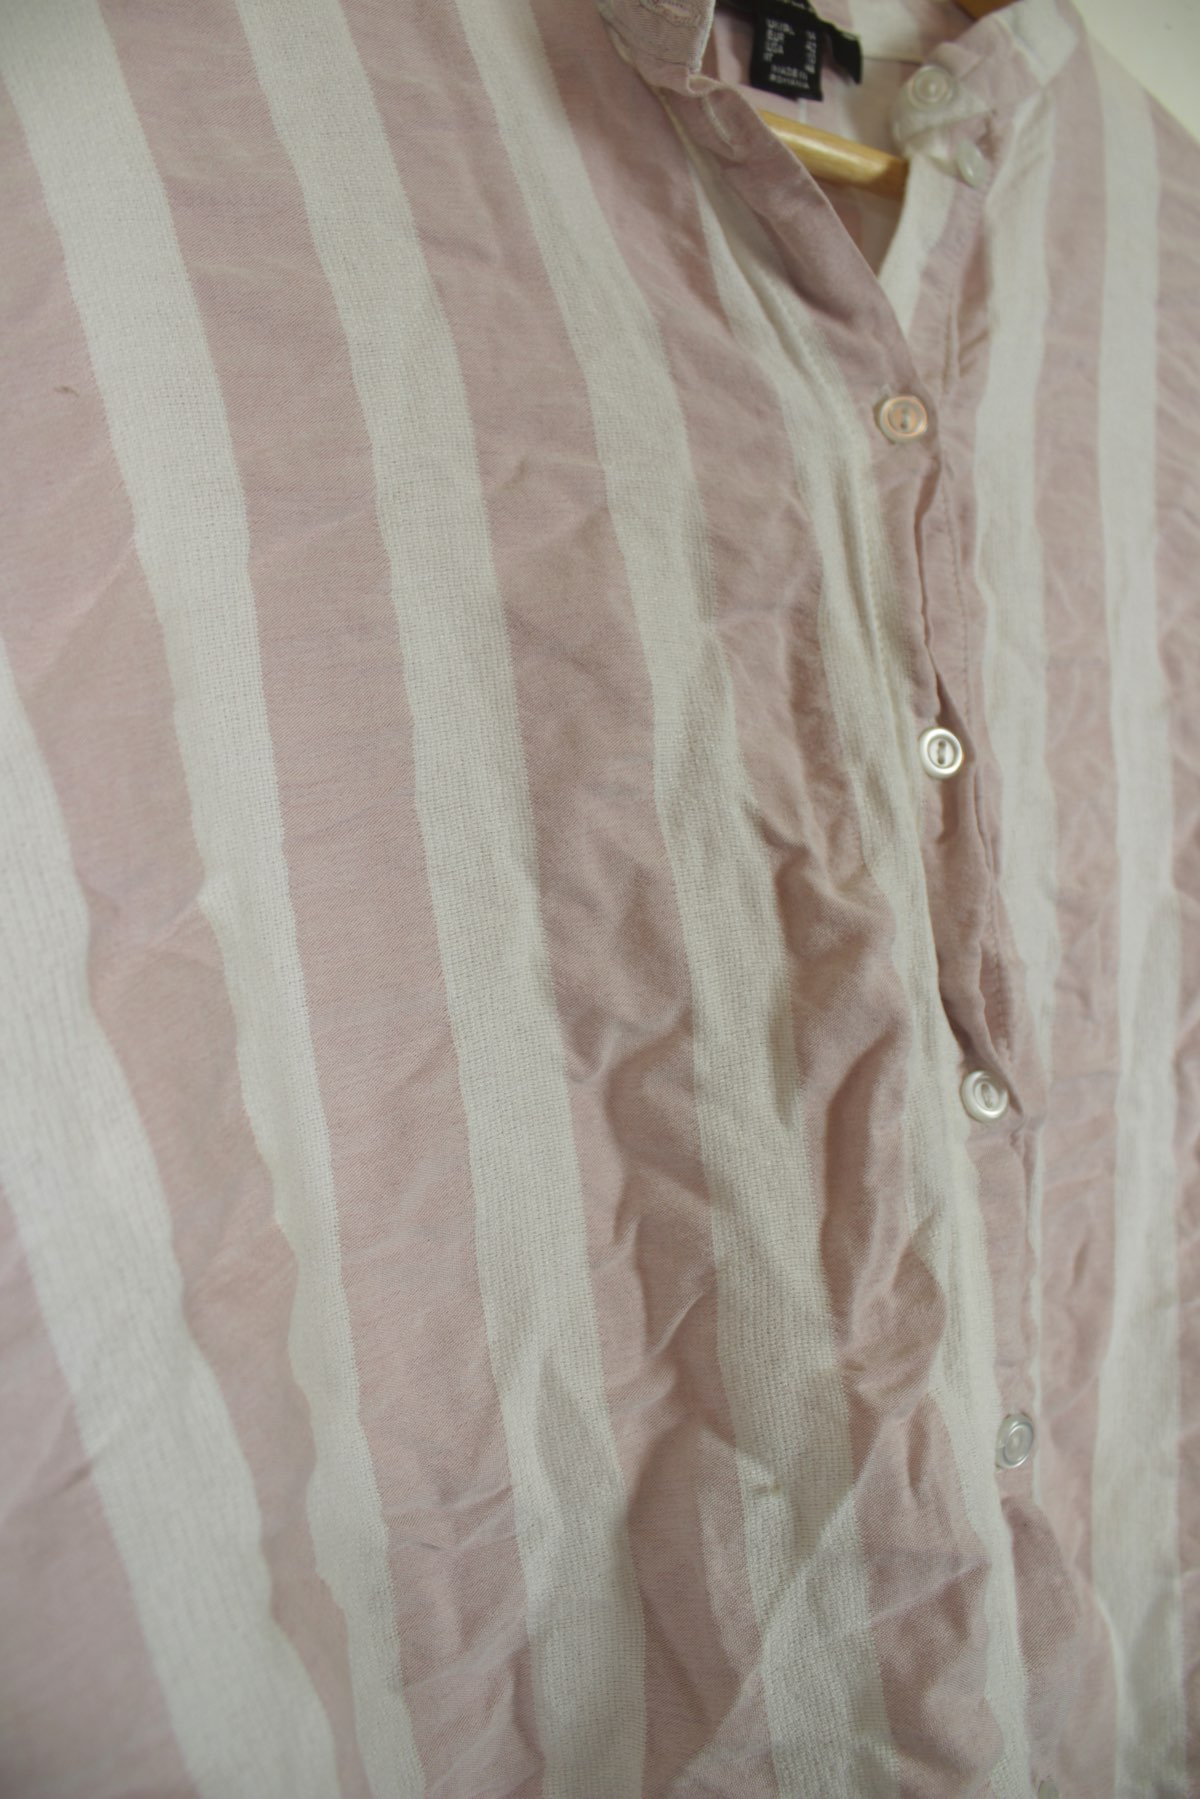 a3ff022bb HomeWomenAtmosphere white & pink striped summer blouse shirt top Size 14.  Previous. Second Hand Clothes · Second Hand Clothes